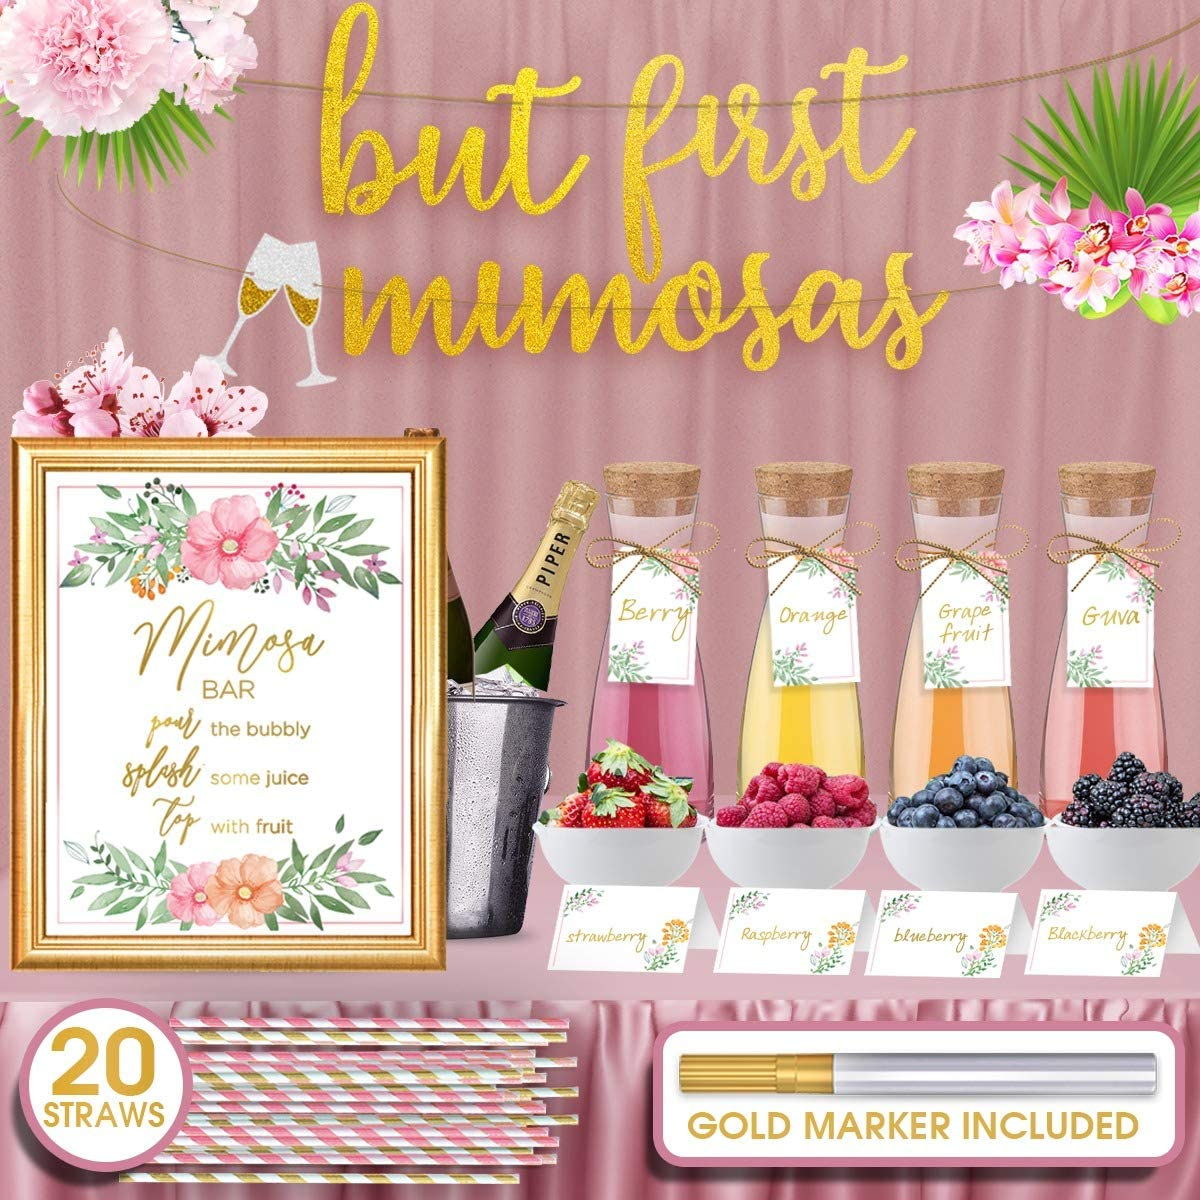 Mimosa Bar Sign But First Mimosas - Gold foil poster,4 Bottle Tags, 20 Striped Paper Straws, 4 Table Cards & a Gold Marker – Super Set for bridal/baby shower, brunch decorations